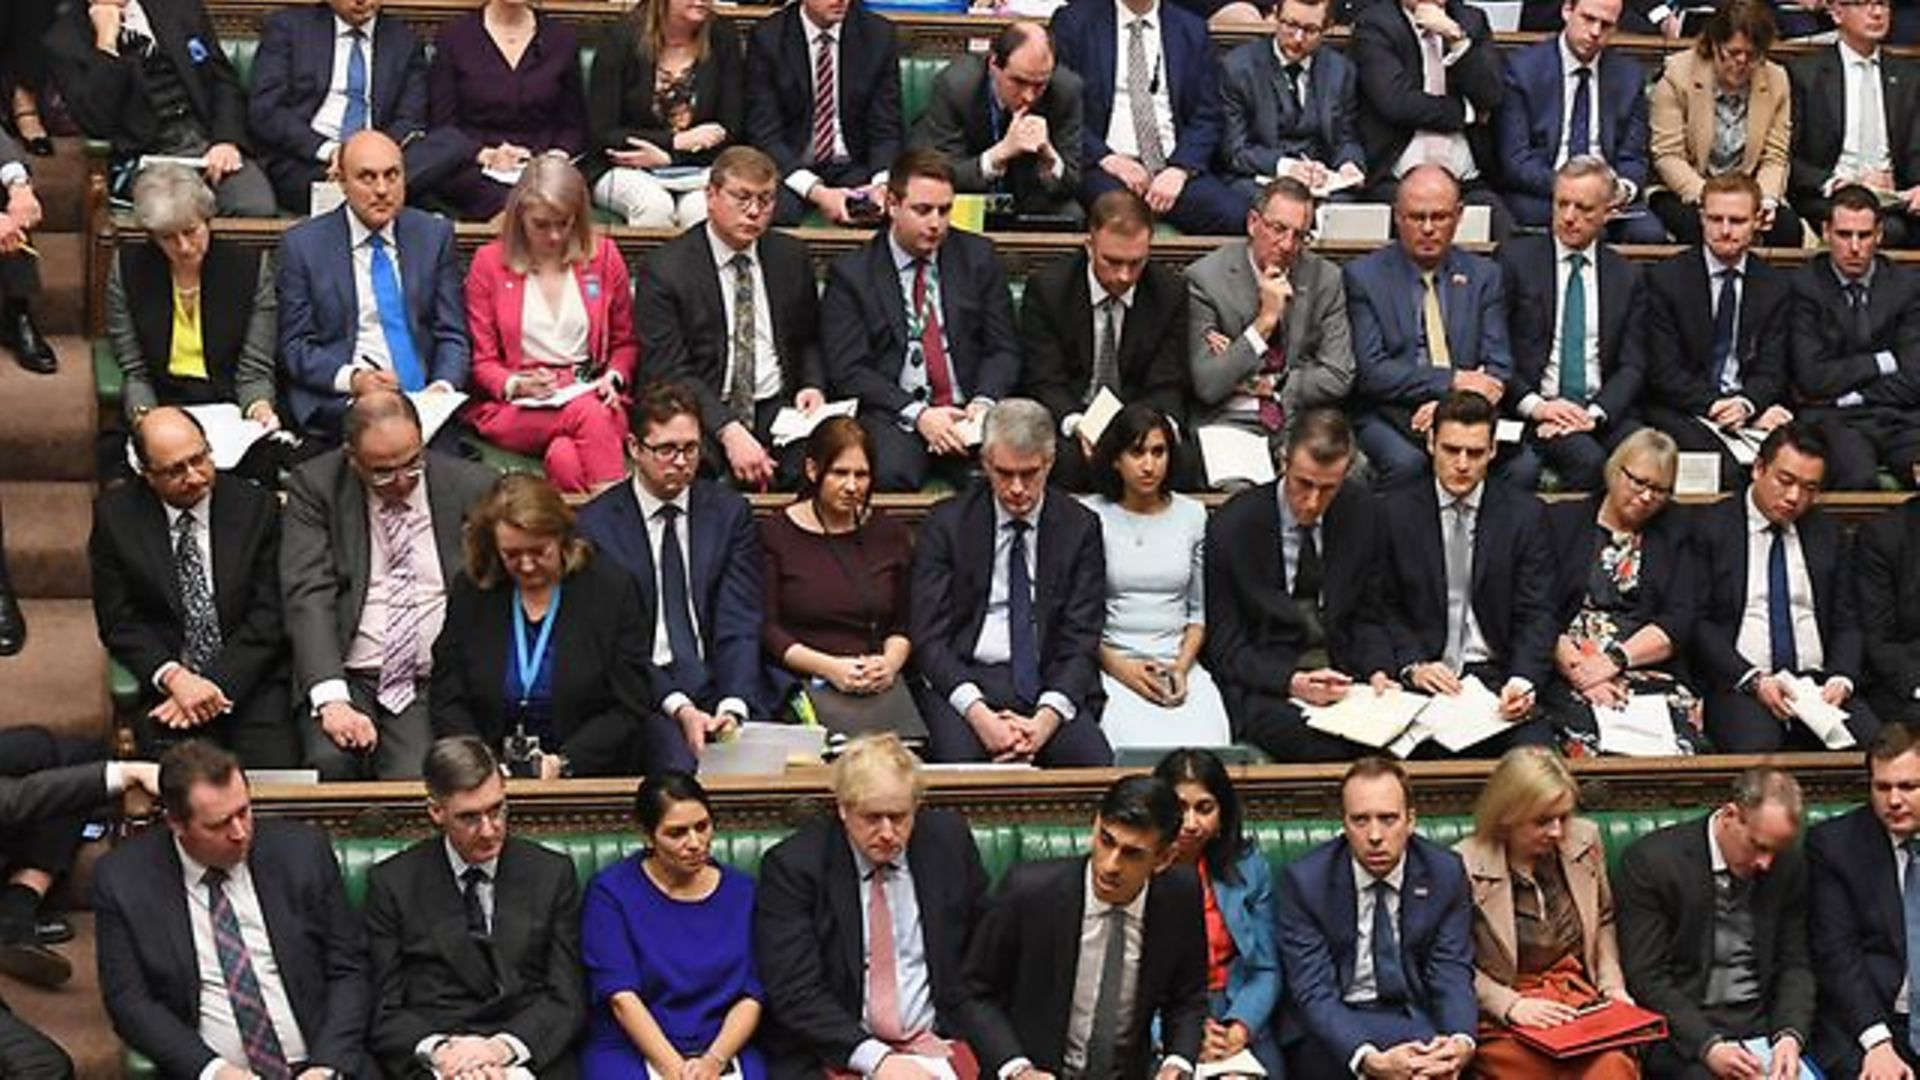 Tory MPs in the House of Commons on Budget Day - Credit: Jessica Taylor